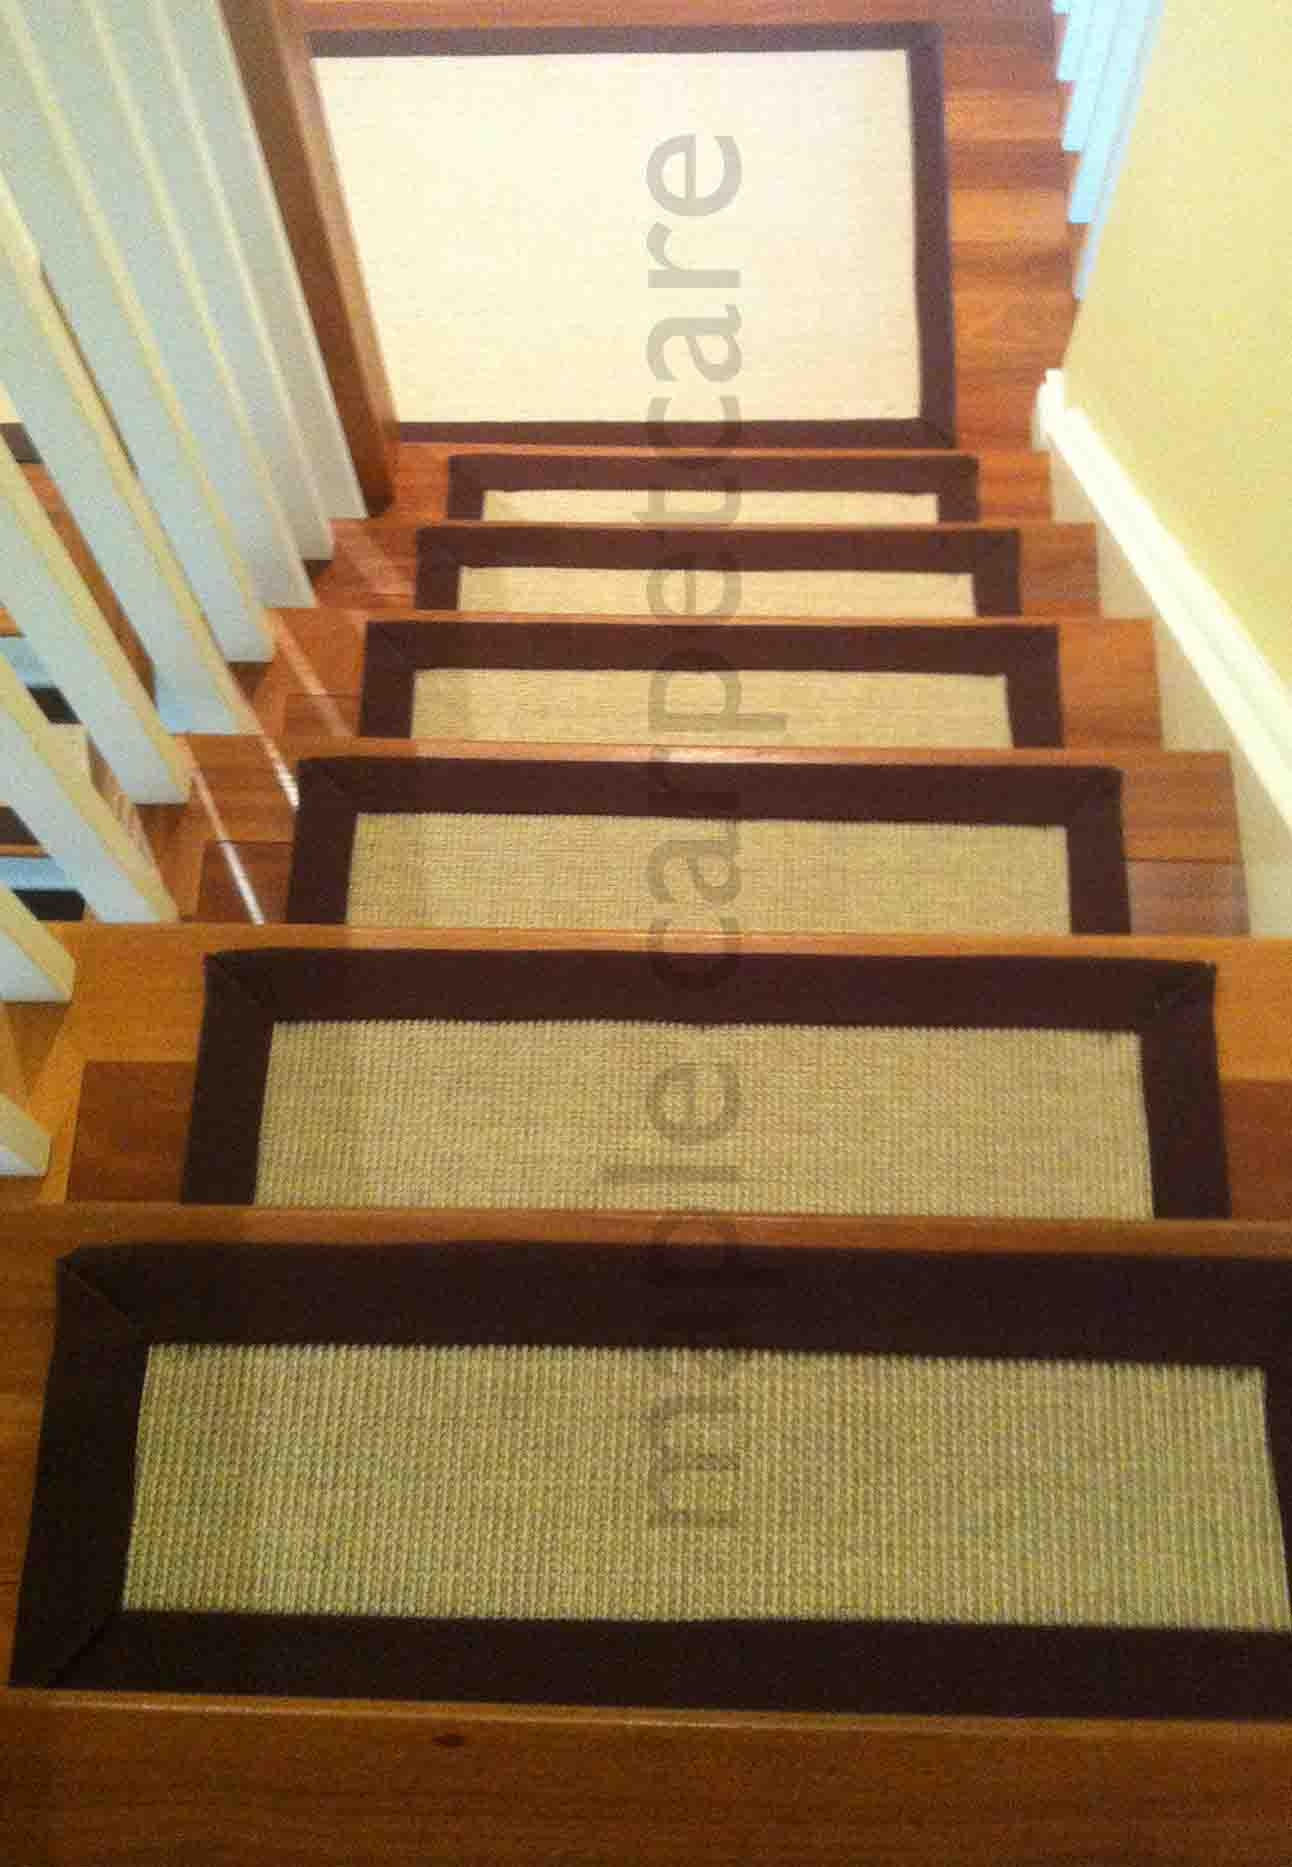 Stair Rugs Rugs For Runners On Stairs Sisal Carpet Laid As Runner Pertaining To Indoor Stair Tread Mats (Image 15 of 15)